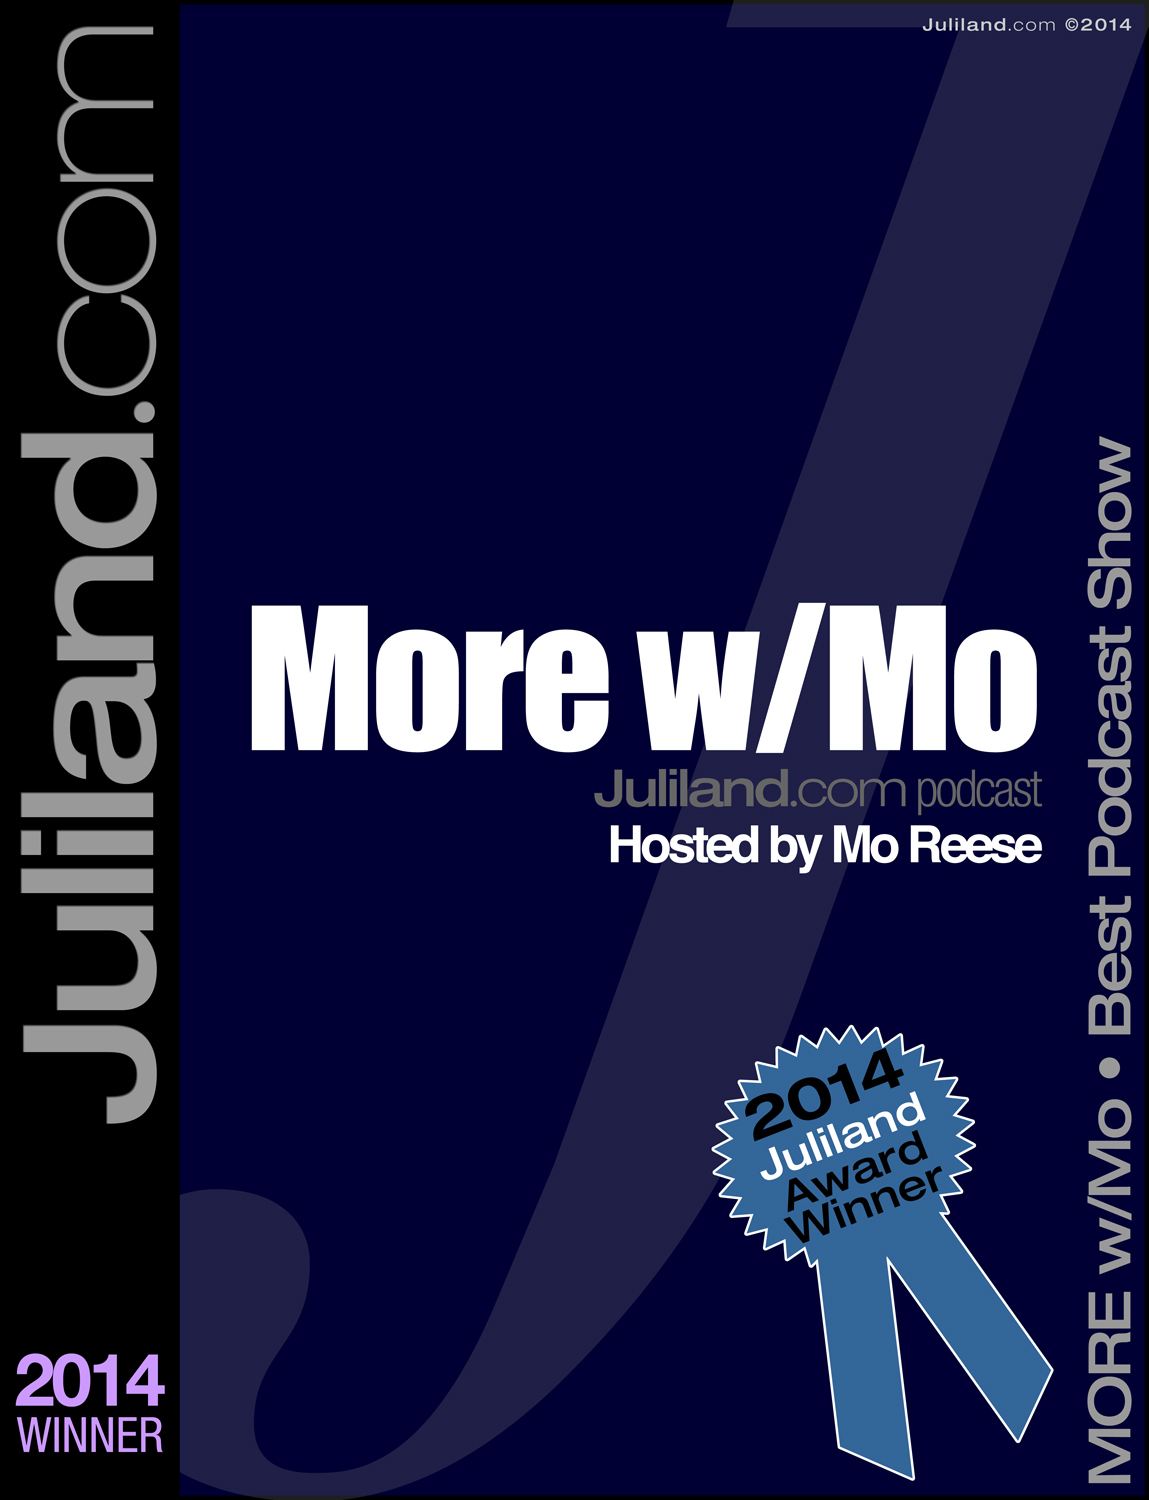 2014 Best Podcast Show – MORE w/Mo